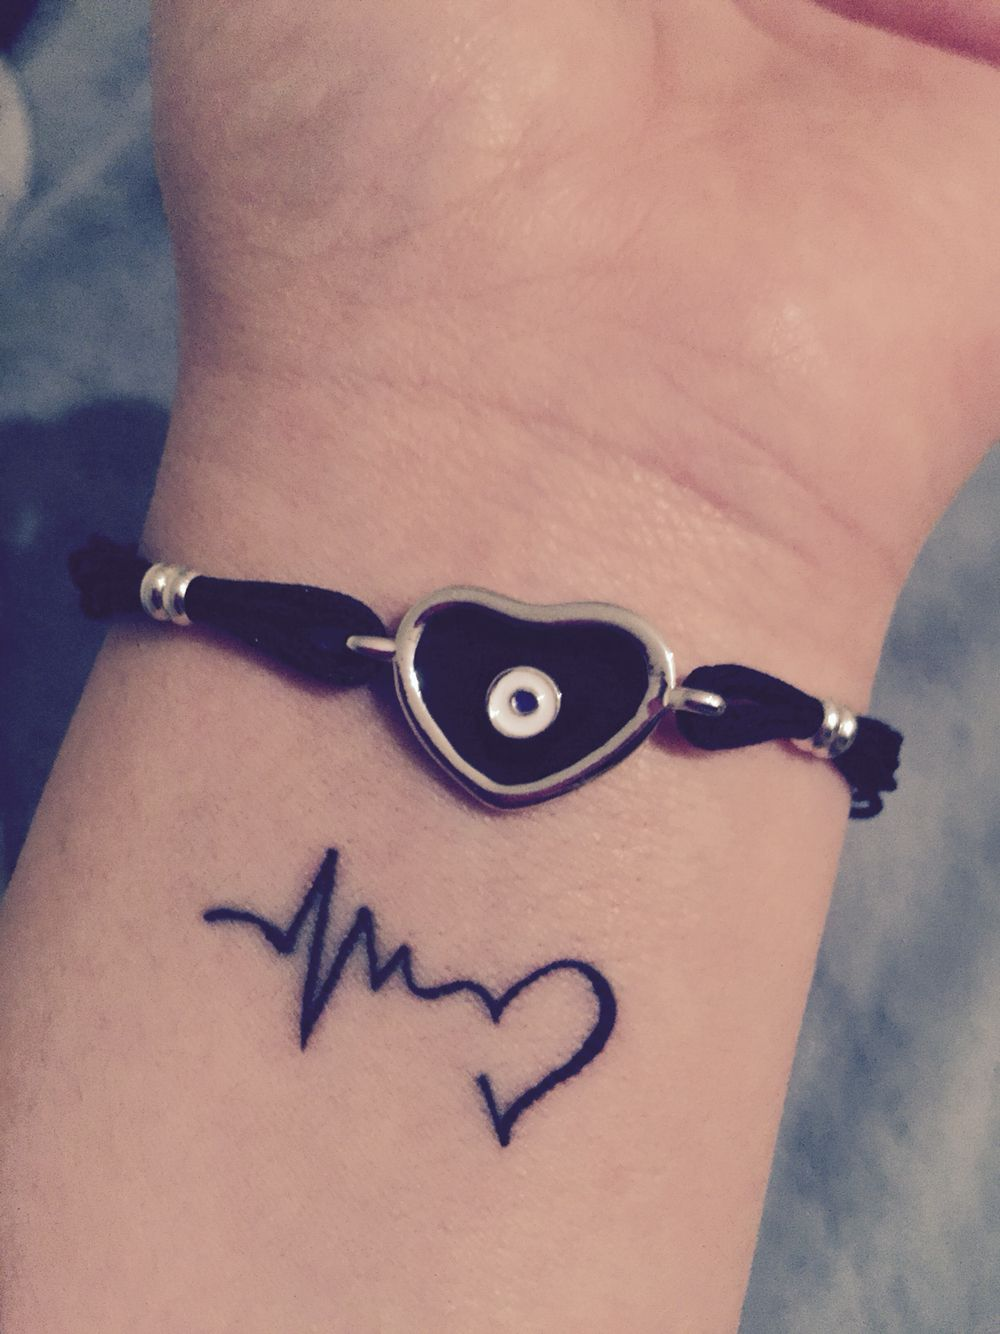 Wrist tattoo... Heartbeat, love, life Heartbeat tattoo